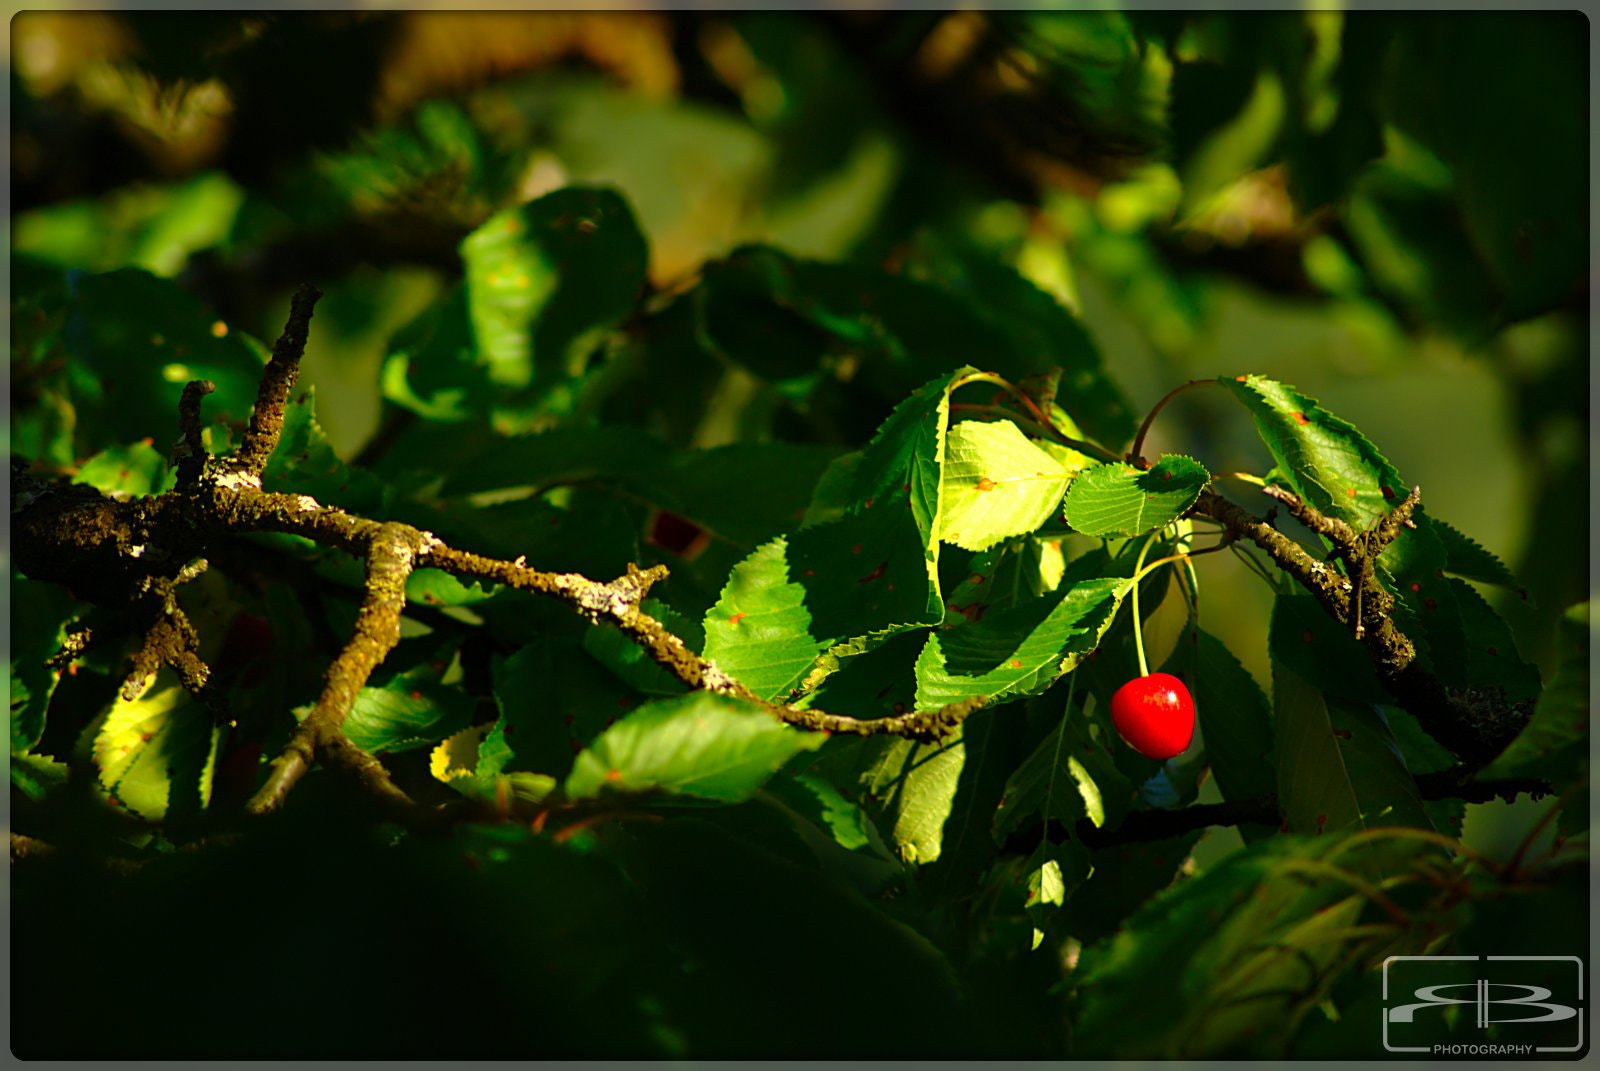 Photograph Lonely Cherry by Rene BERNHARD on 500px